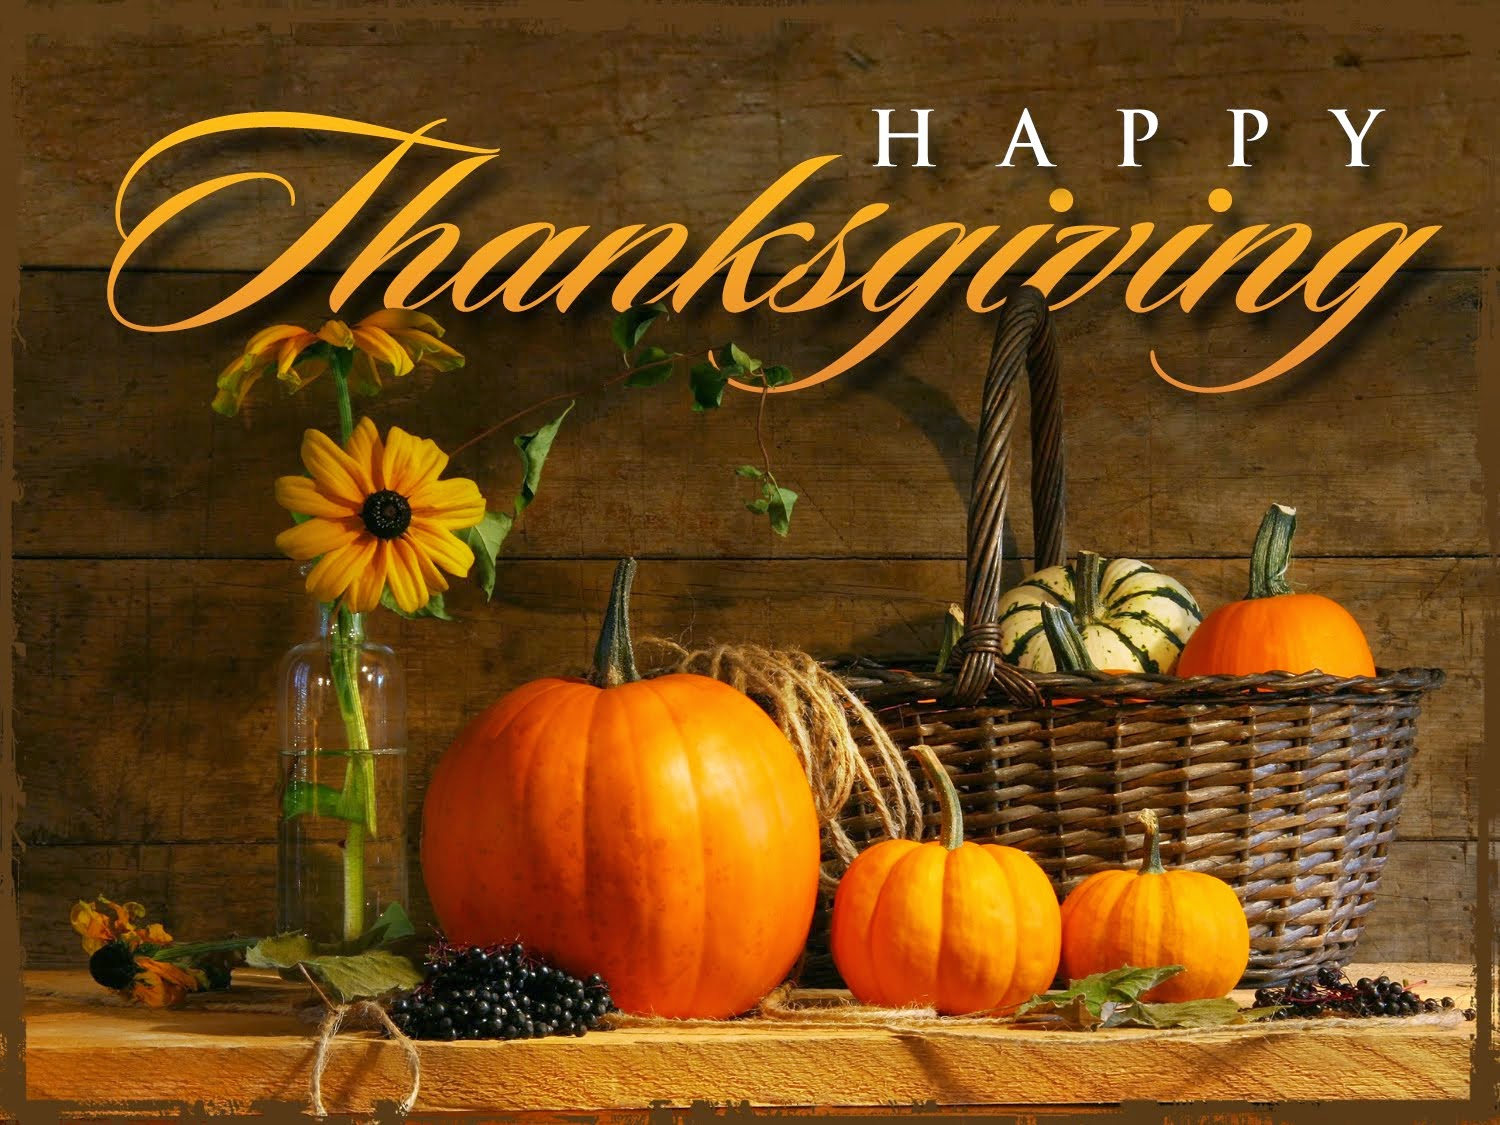 Elder Statement wishes you and your family a joyous Thanksgiving